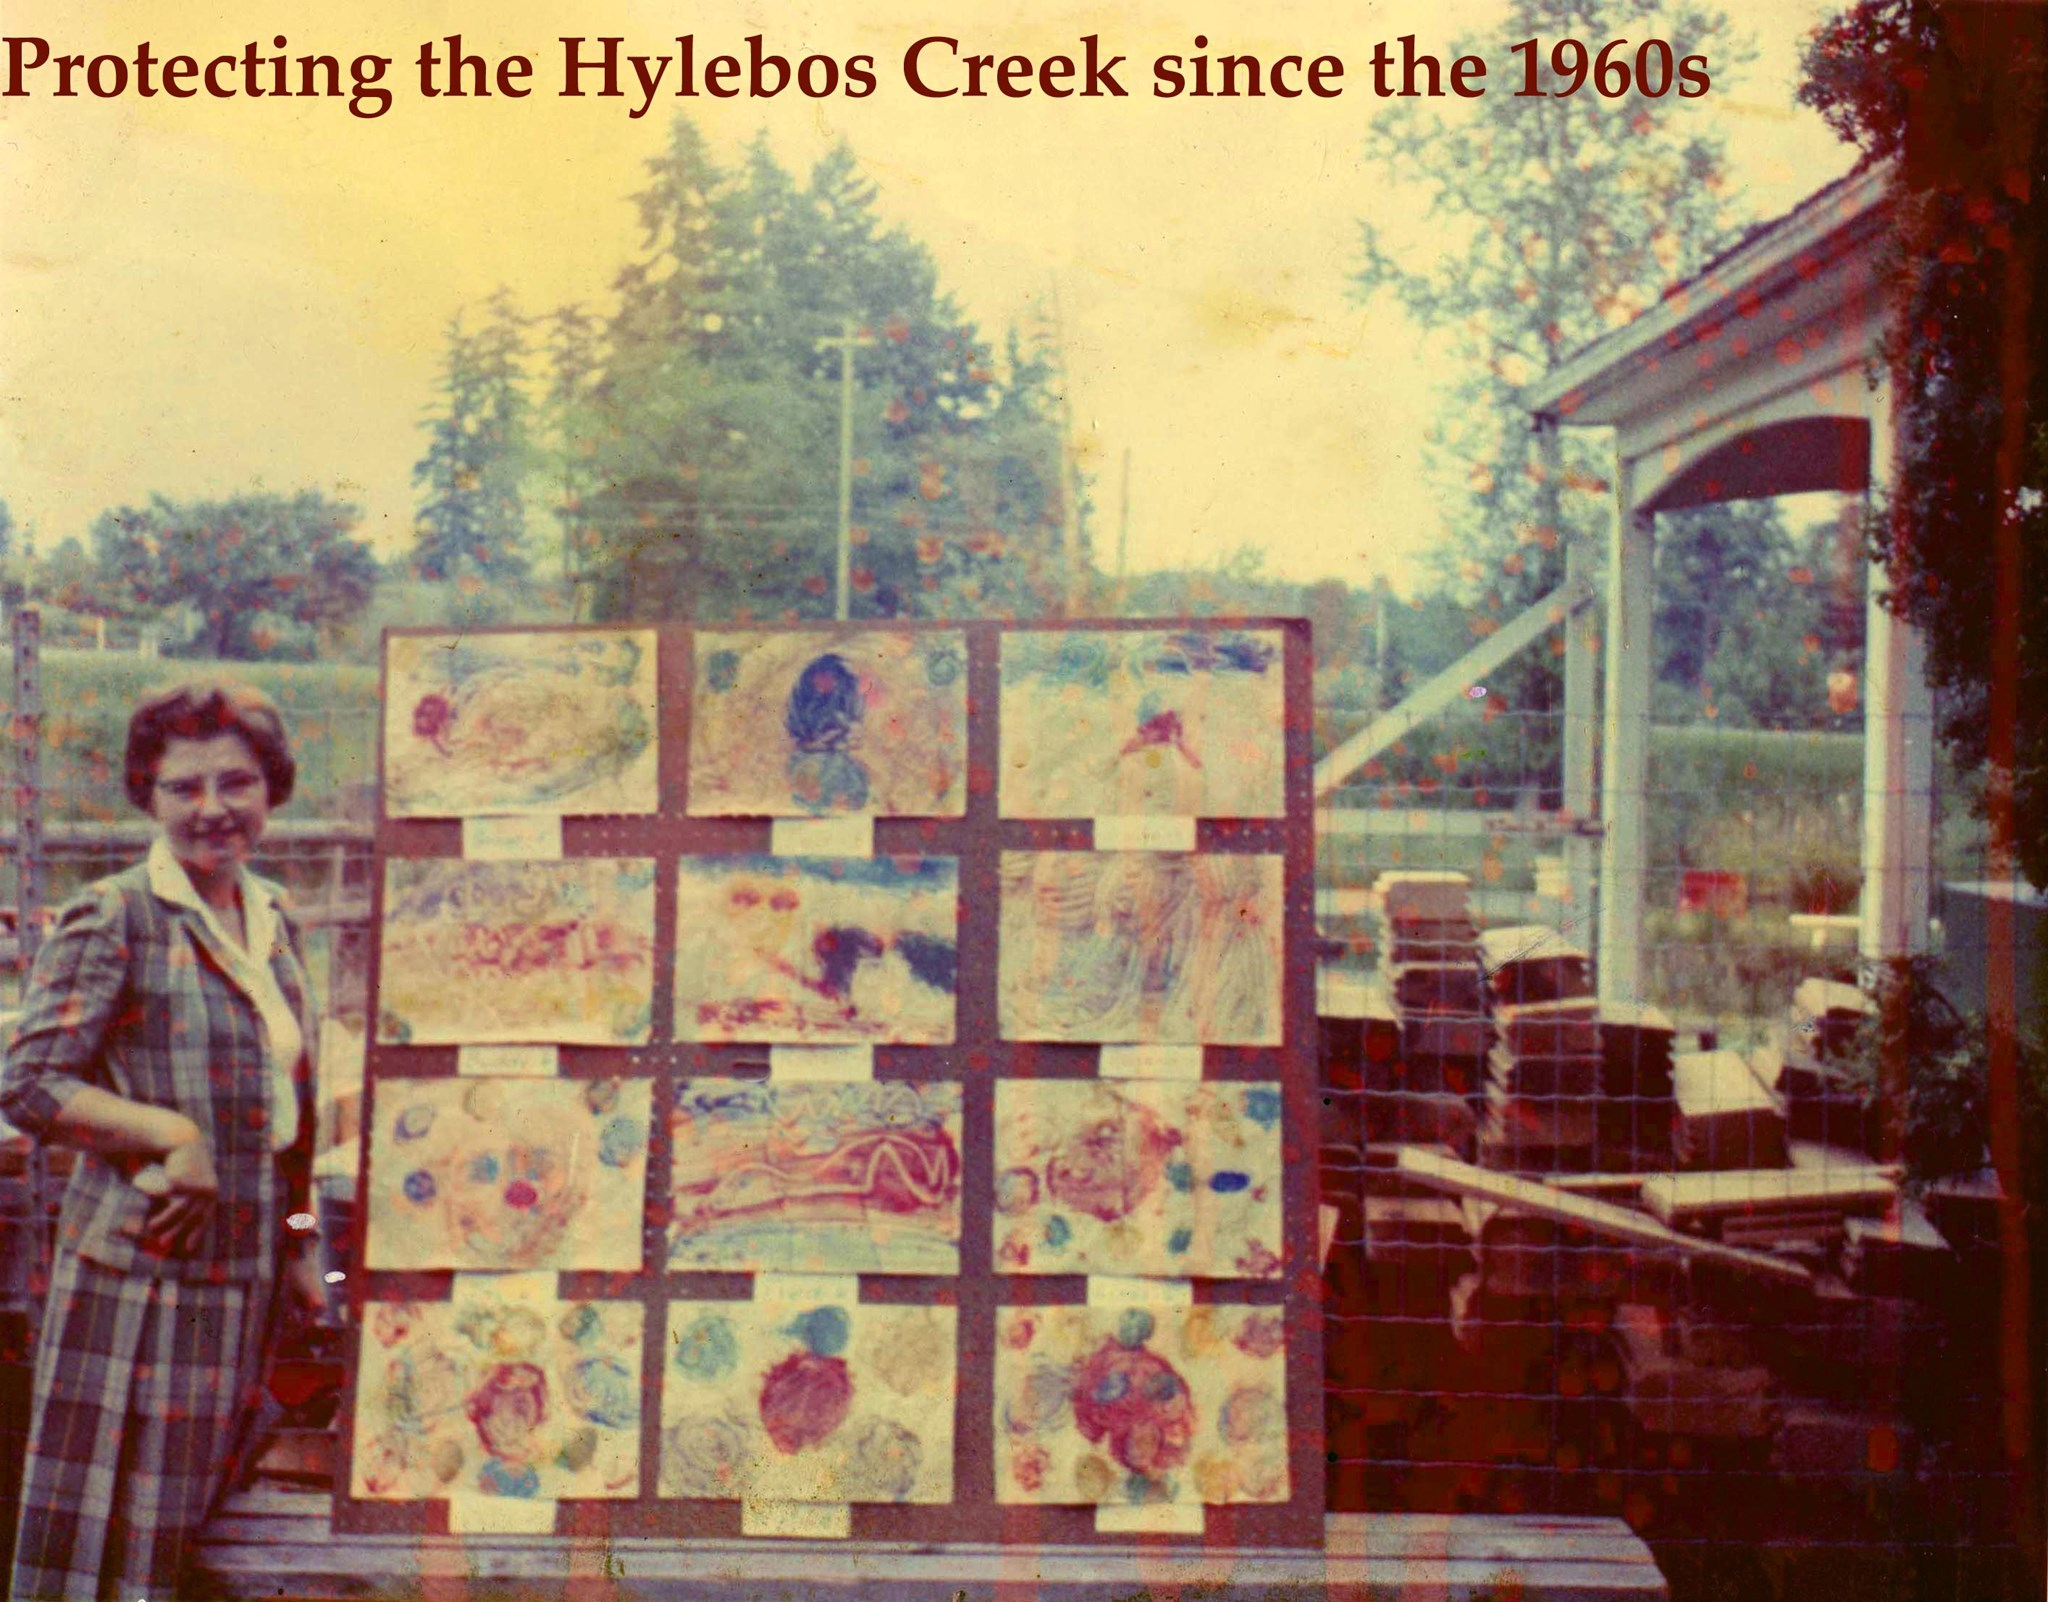 1950s: 50+ Years of Hylebos Creek Education & Protection